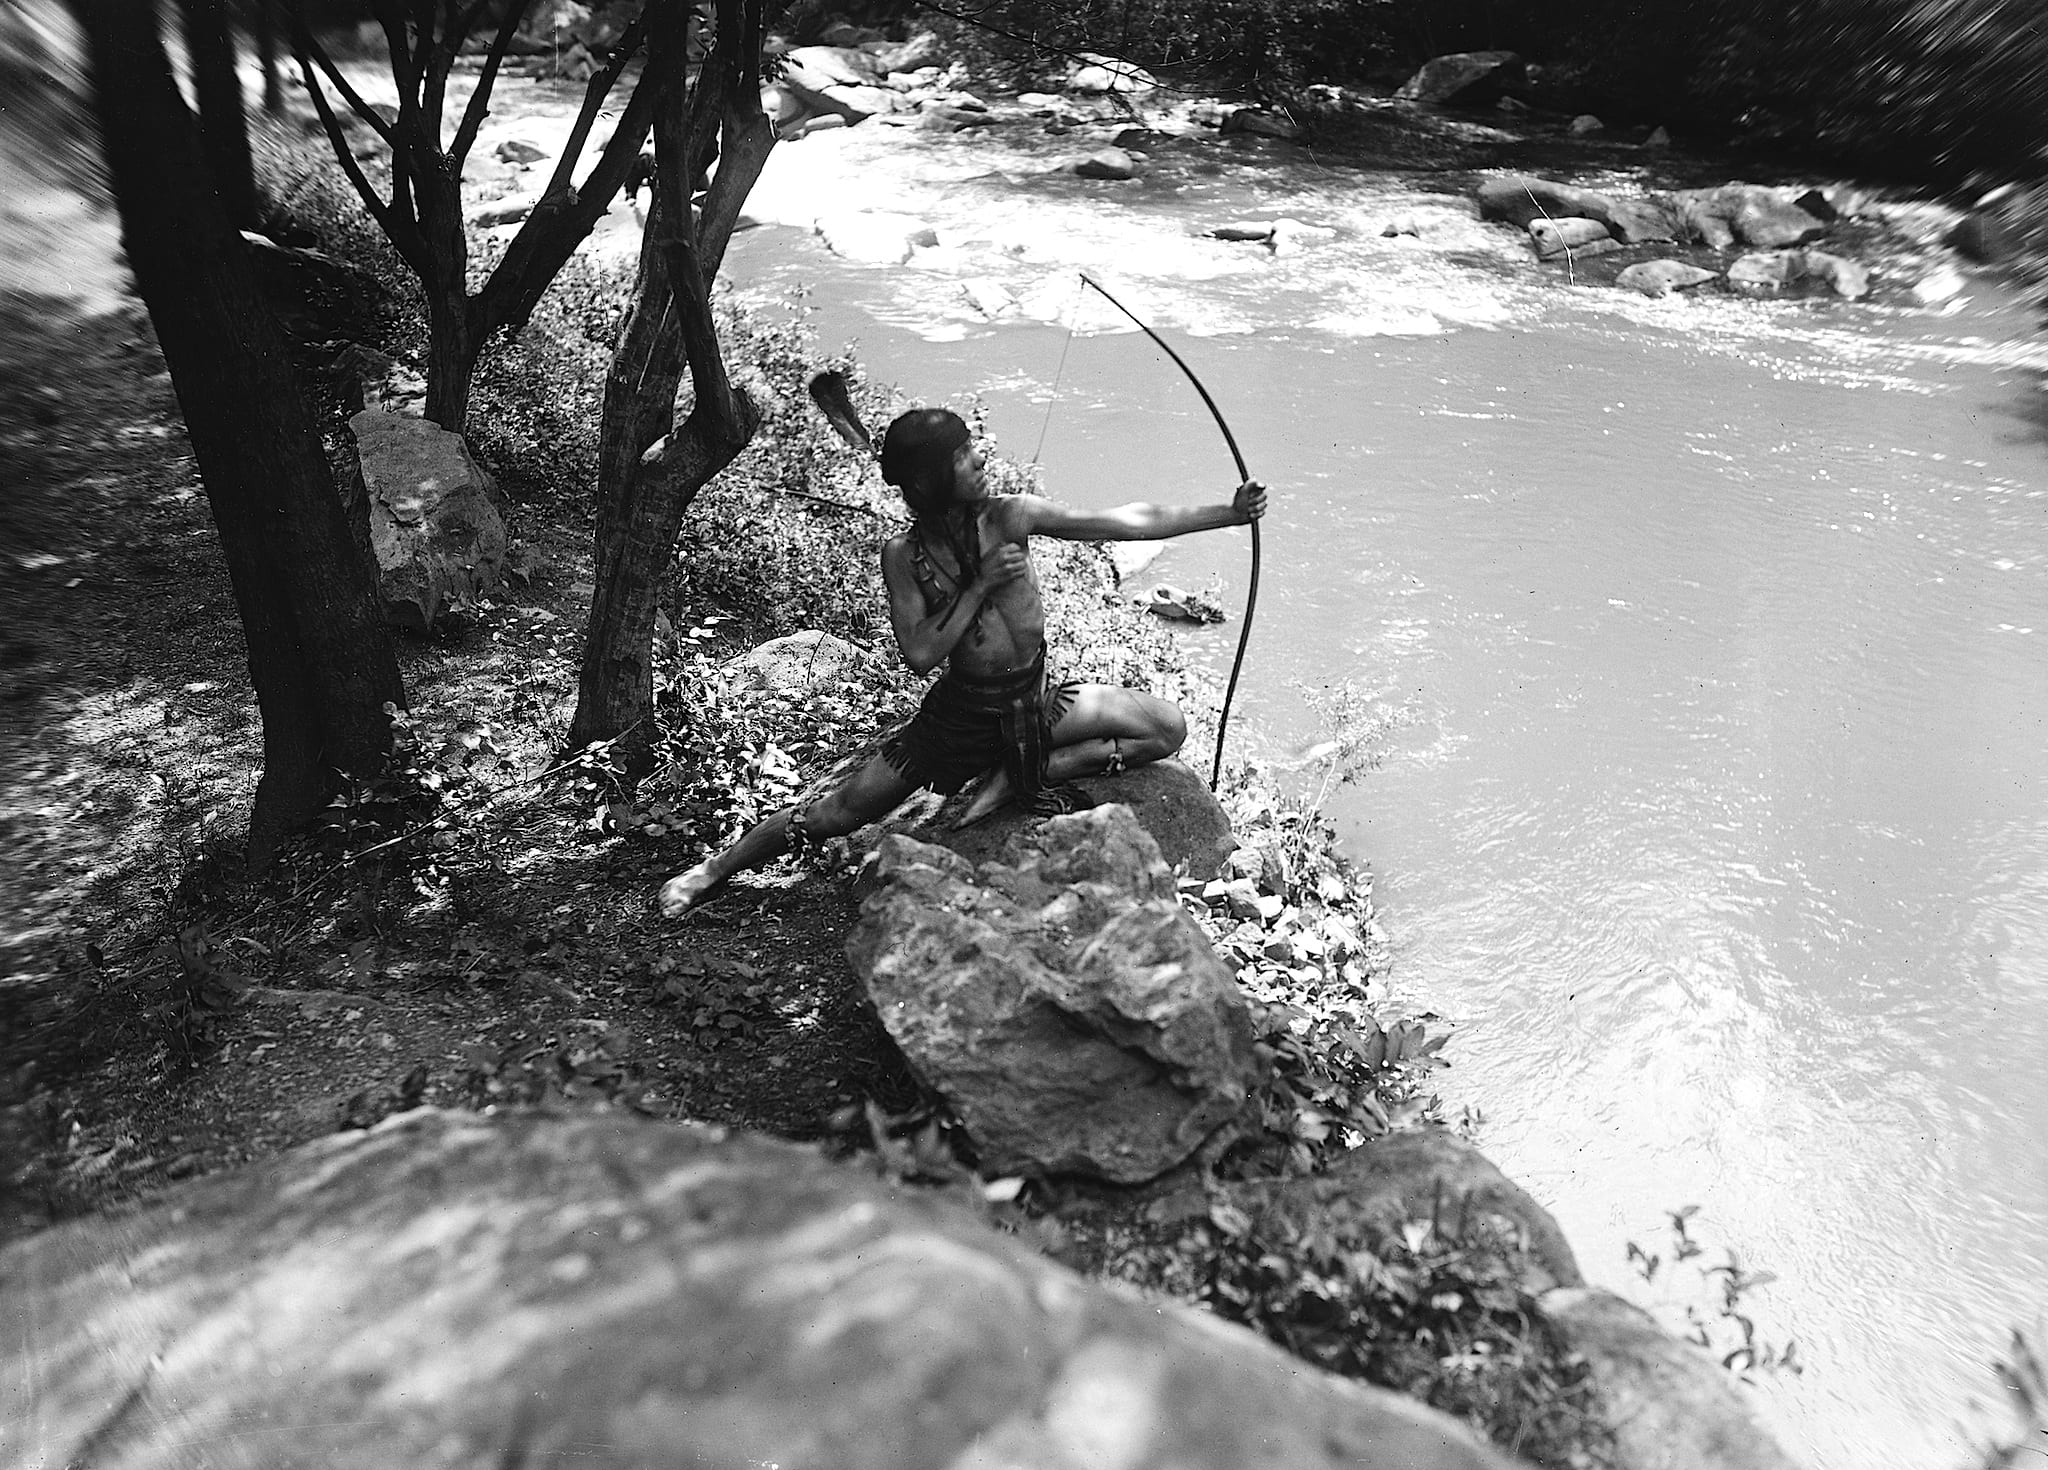 Native American Shoots Bow and Arrow Near Rock Creek